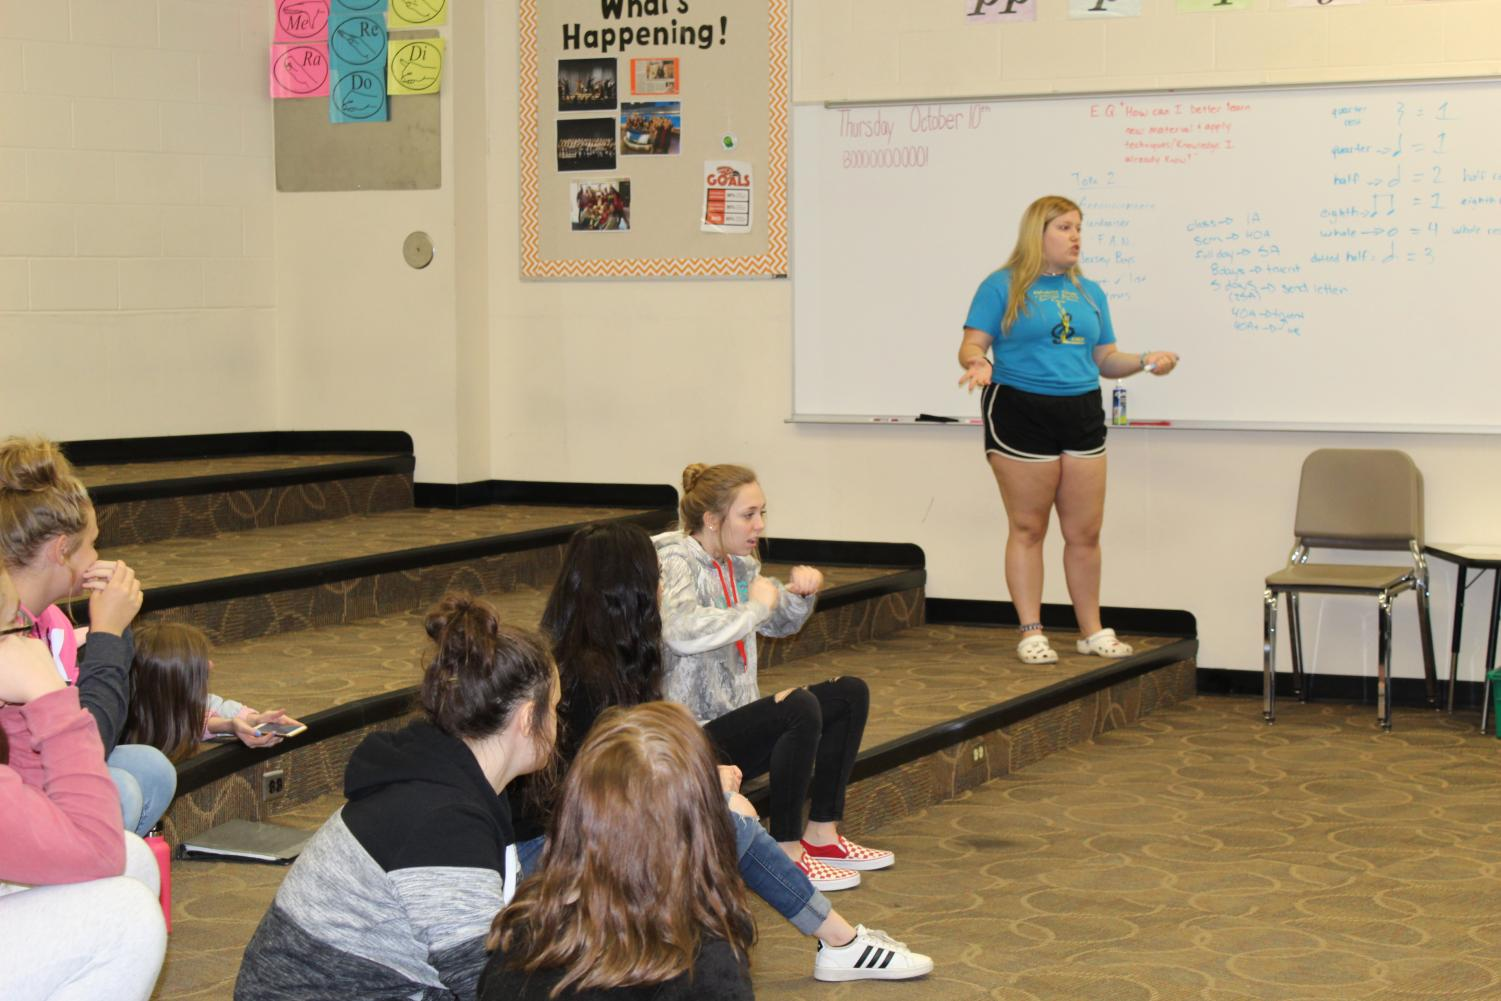 Senior+Madison+Griffith+as+she+is+explaining+absences+on+the+board+to+the+rest+of+her+choir+class.